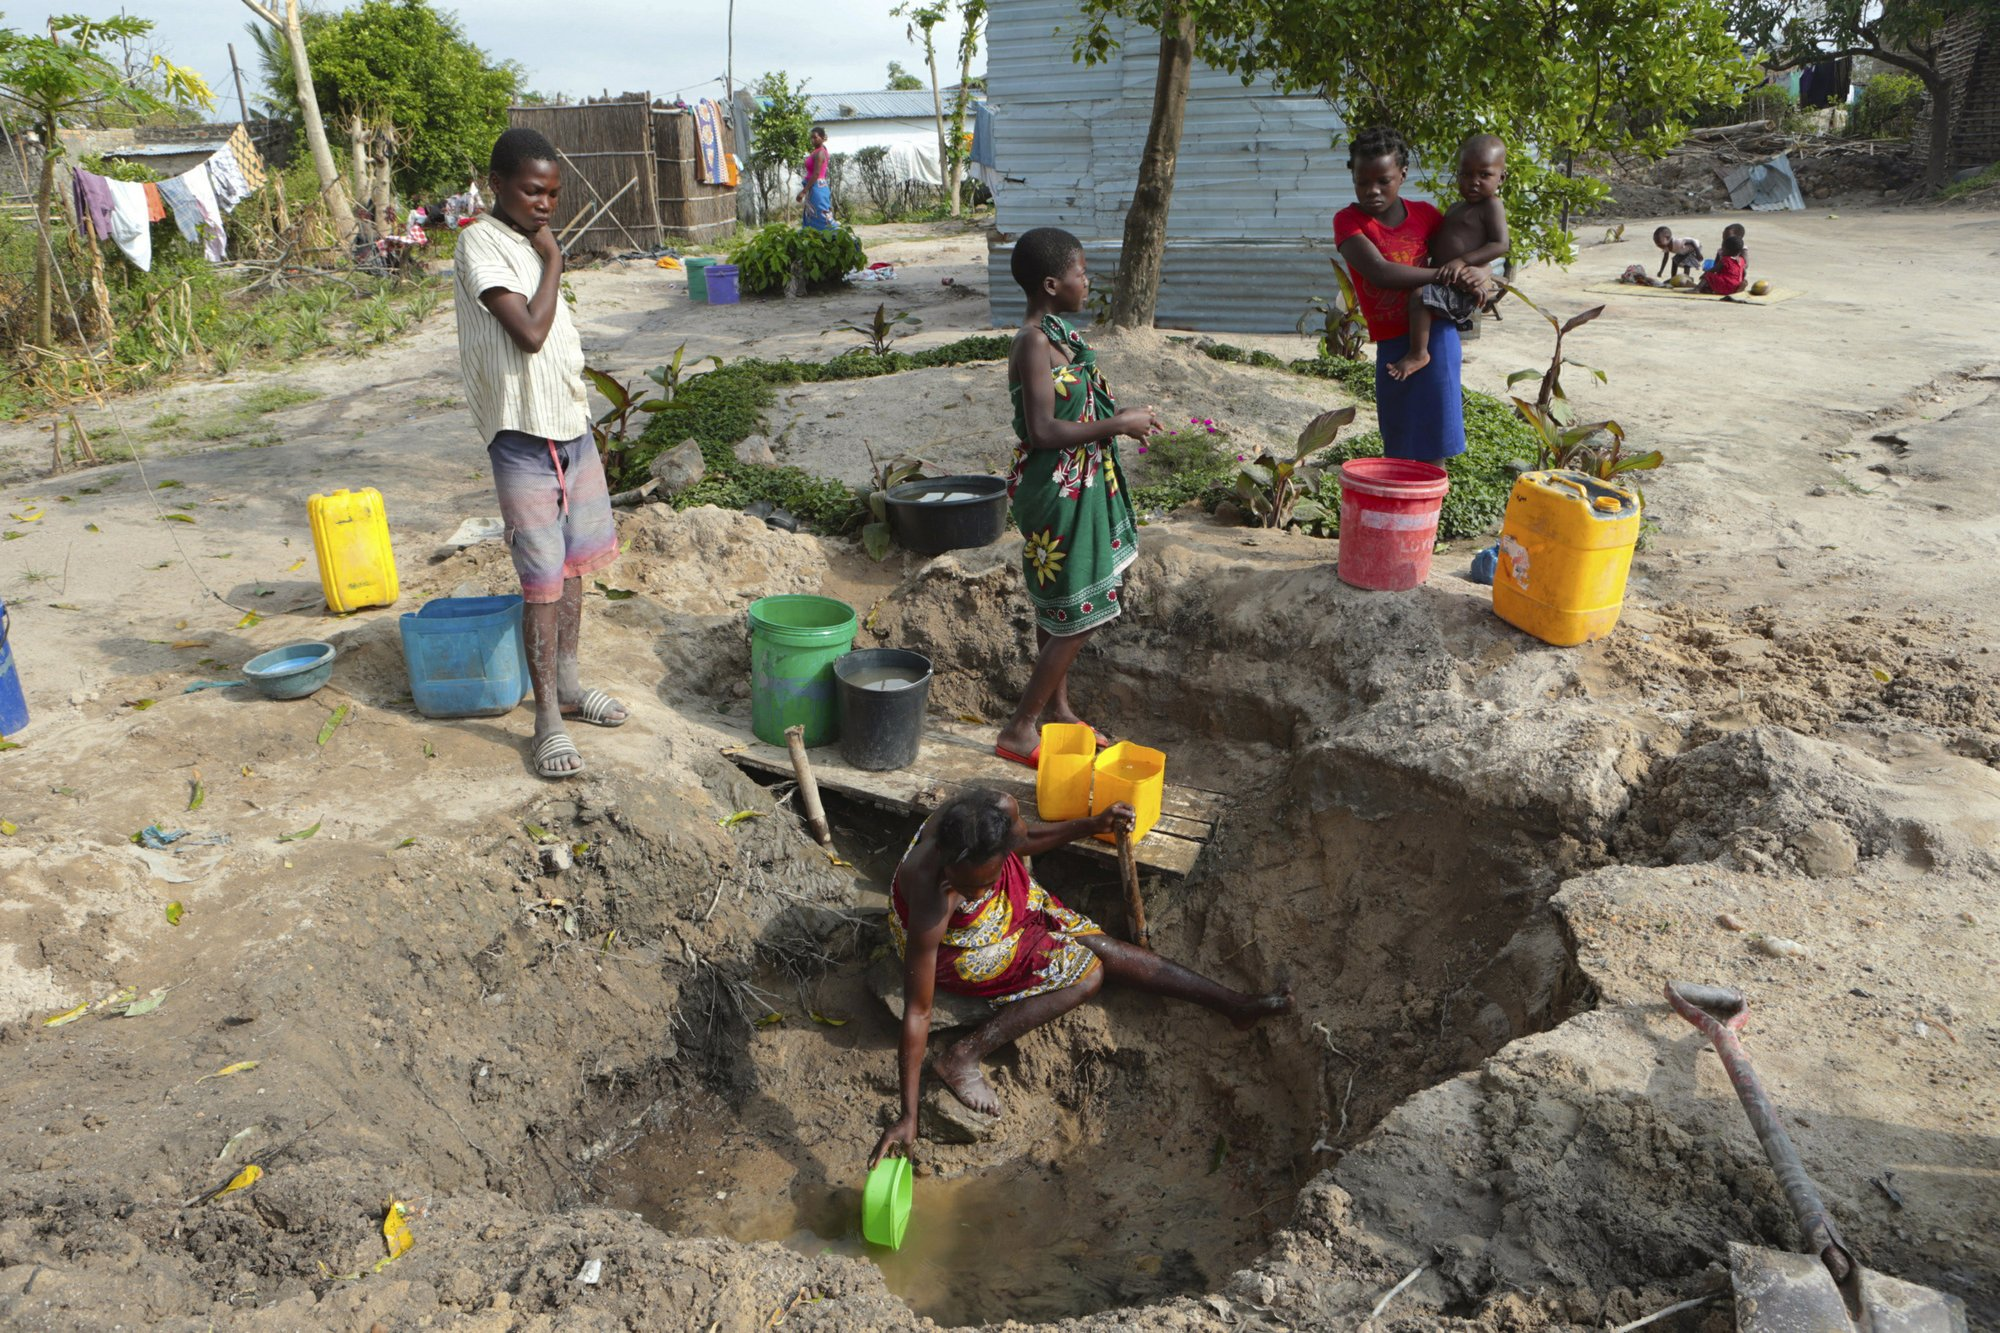 Mozambique races to contain 1,000 cases of cholera